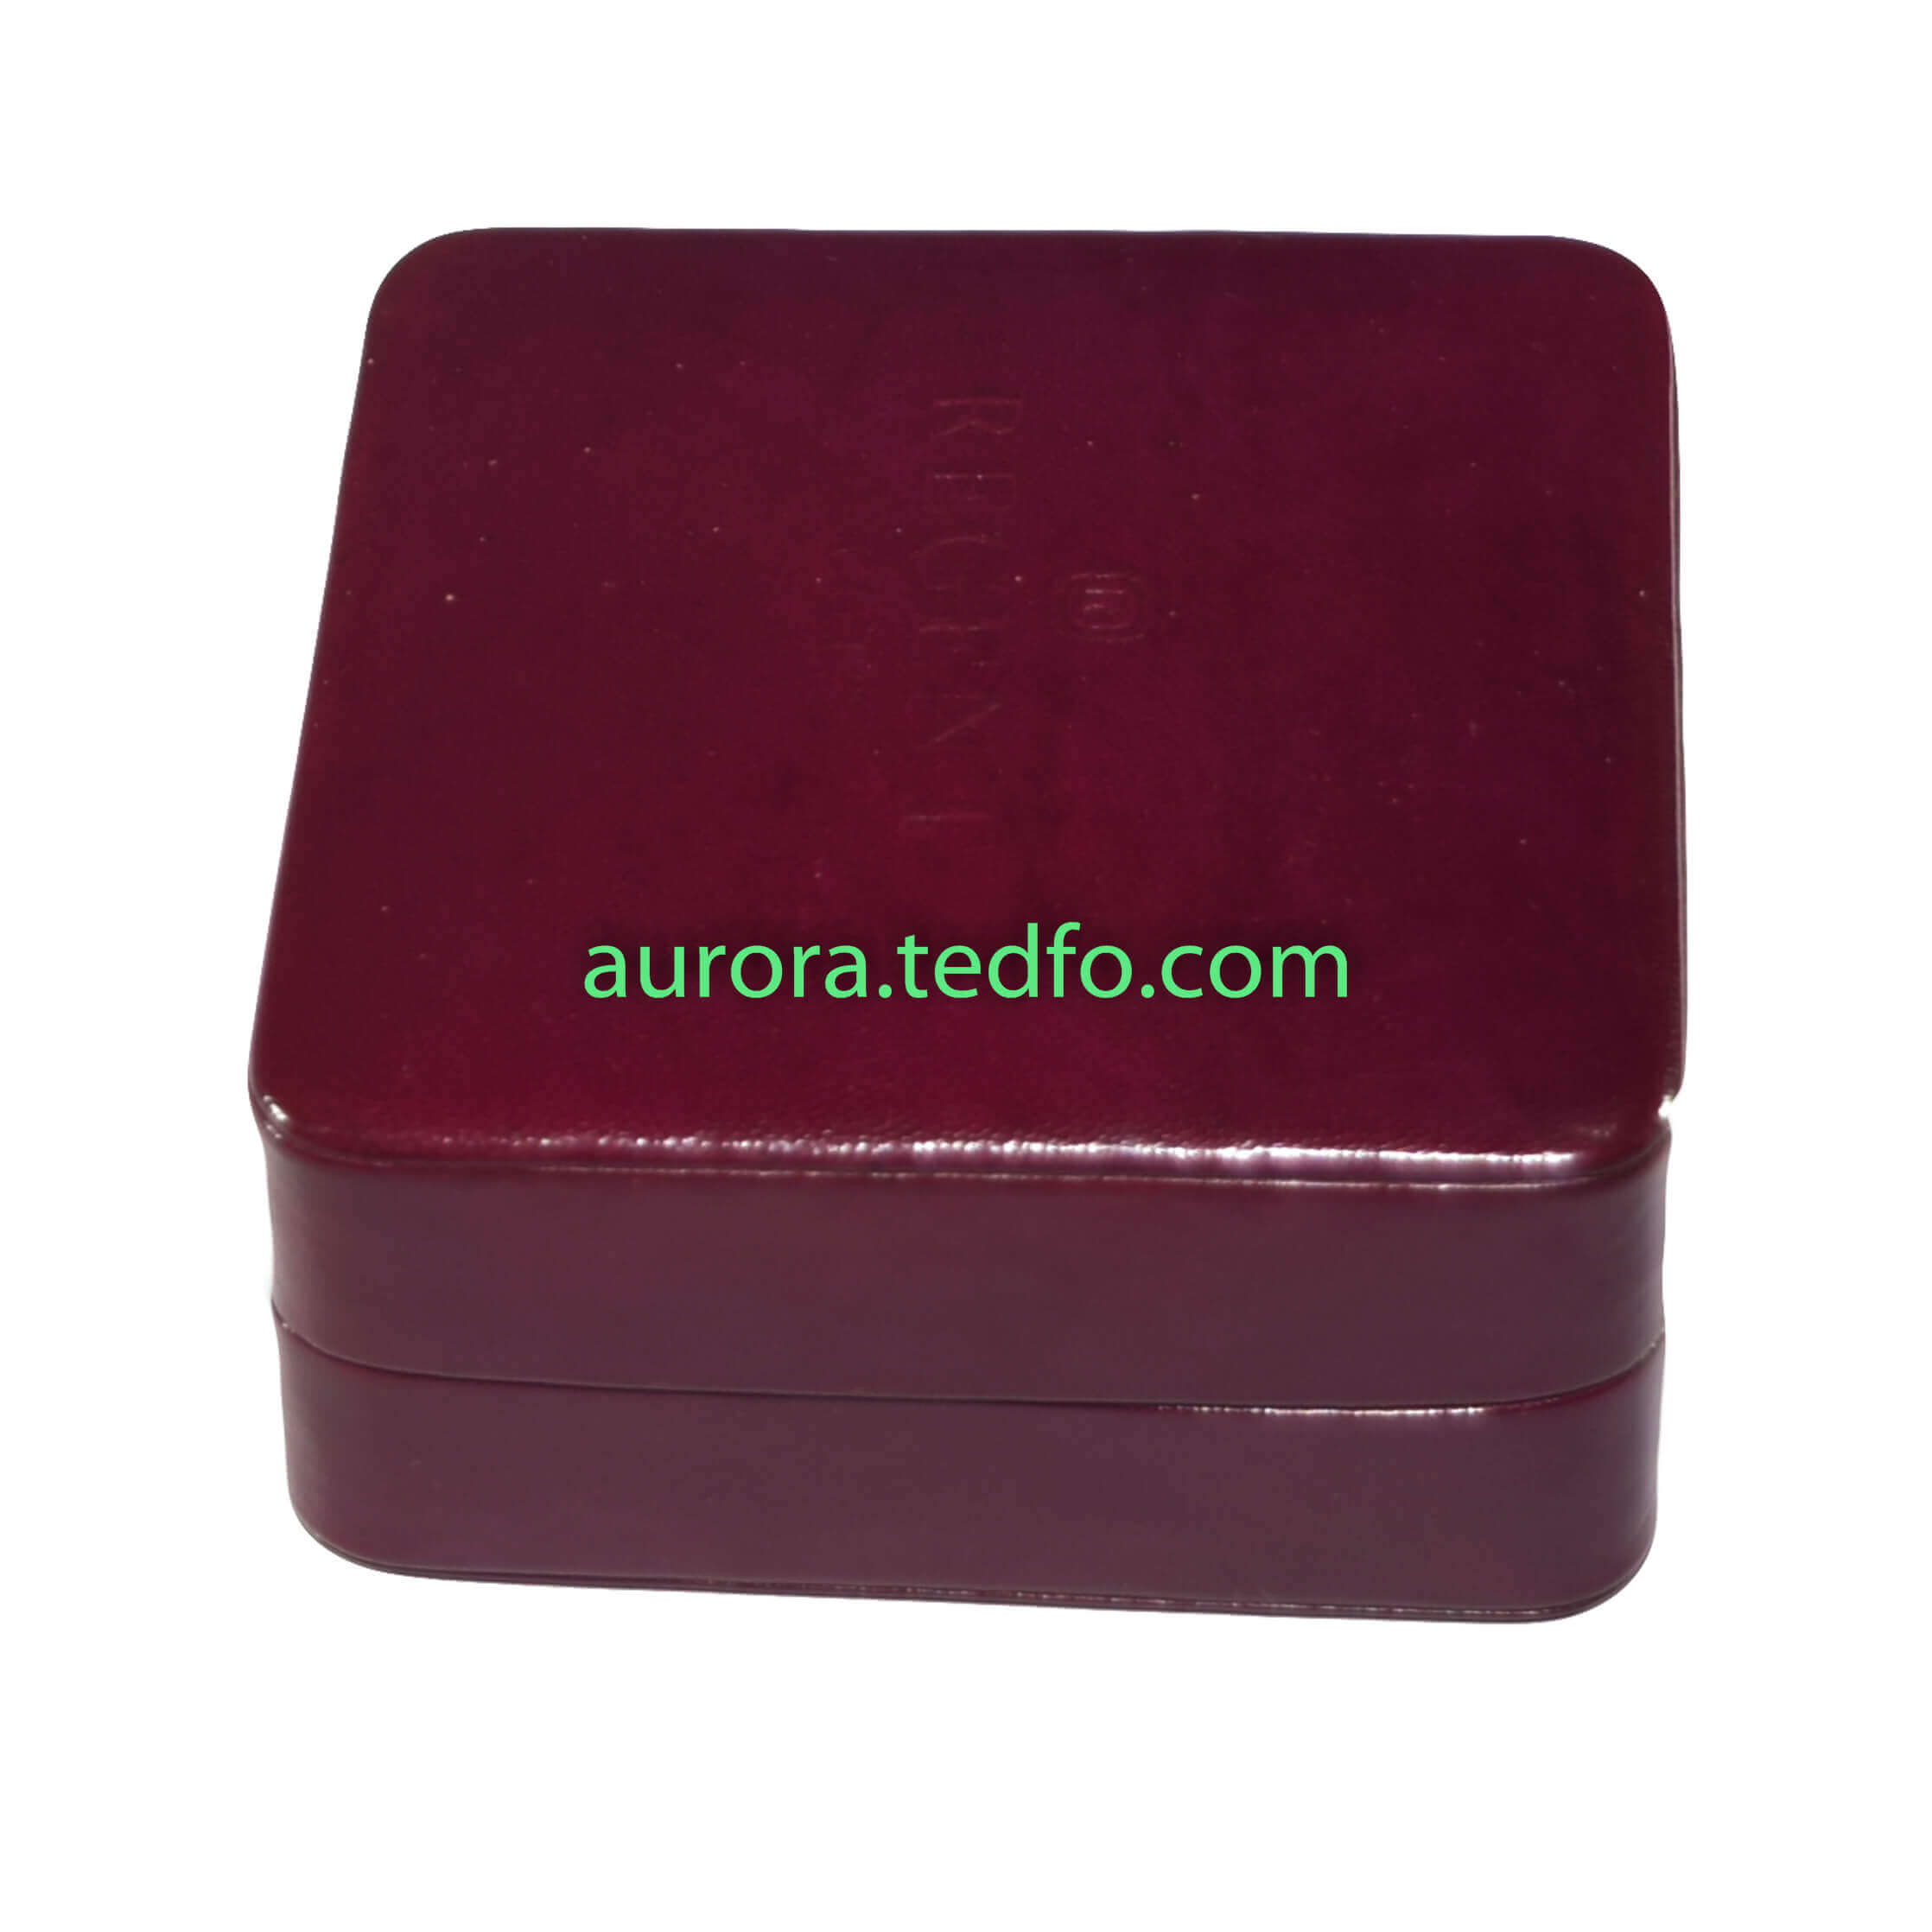 Square Shaped Jewelry Box,Watch Box,Red Colored,Real Leather